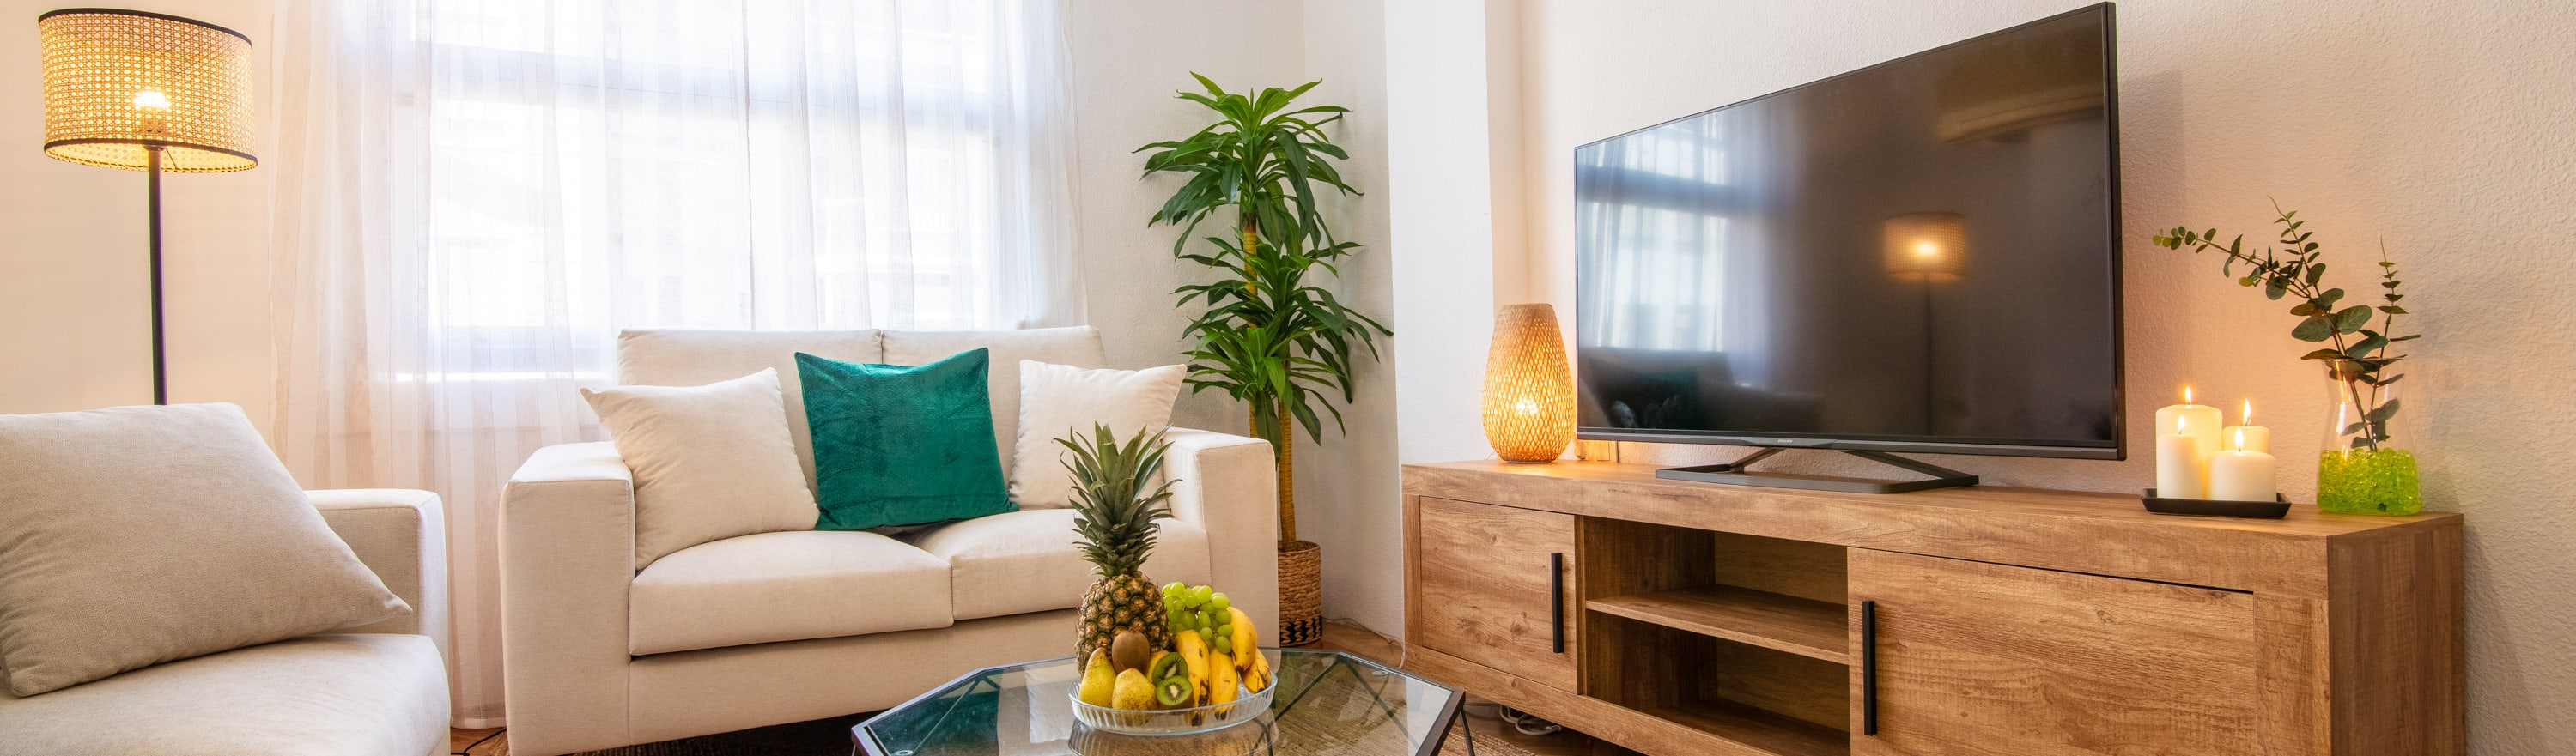 Domo Home Staging